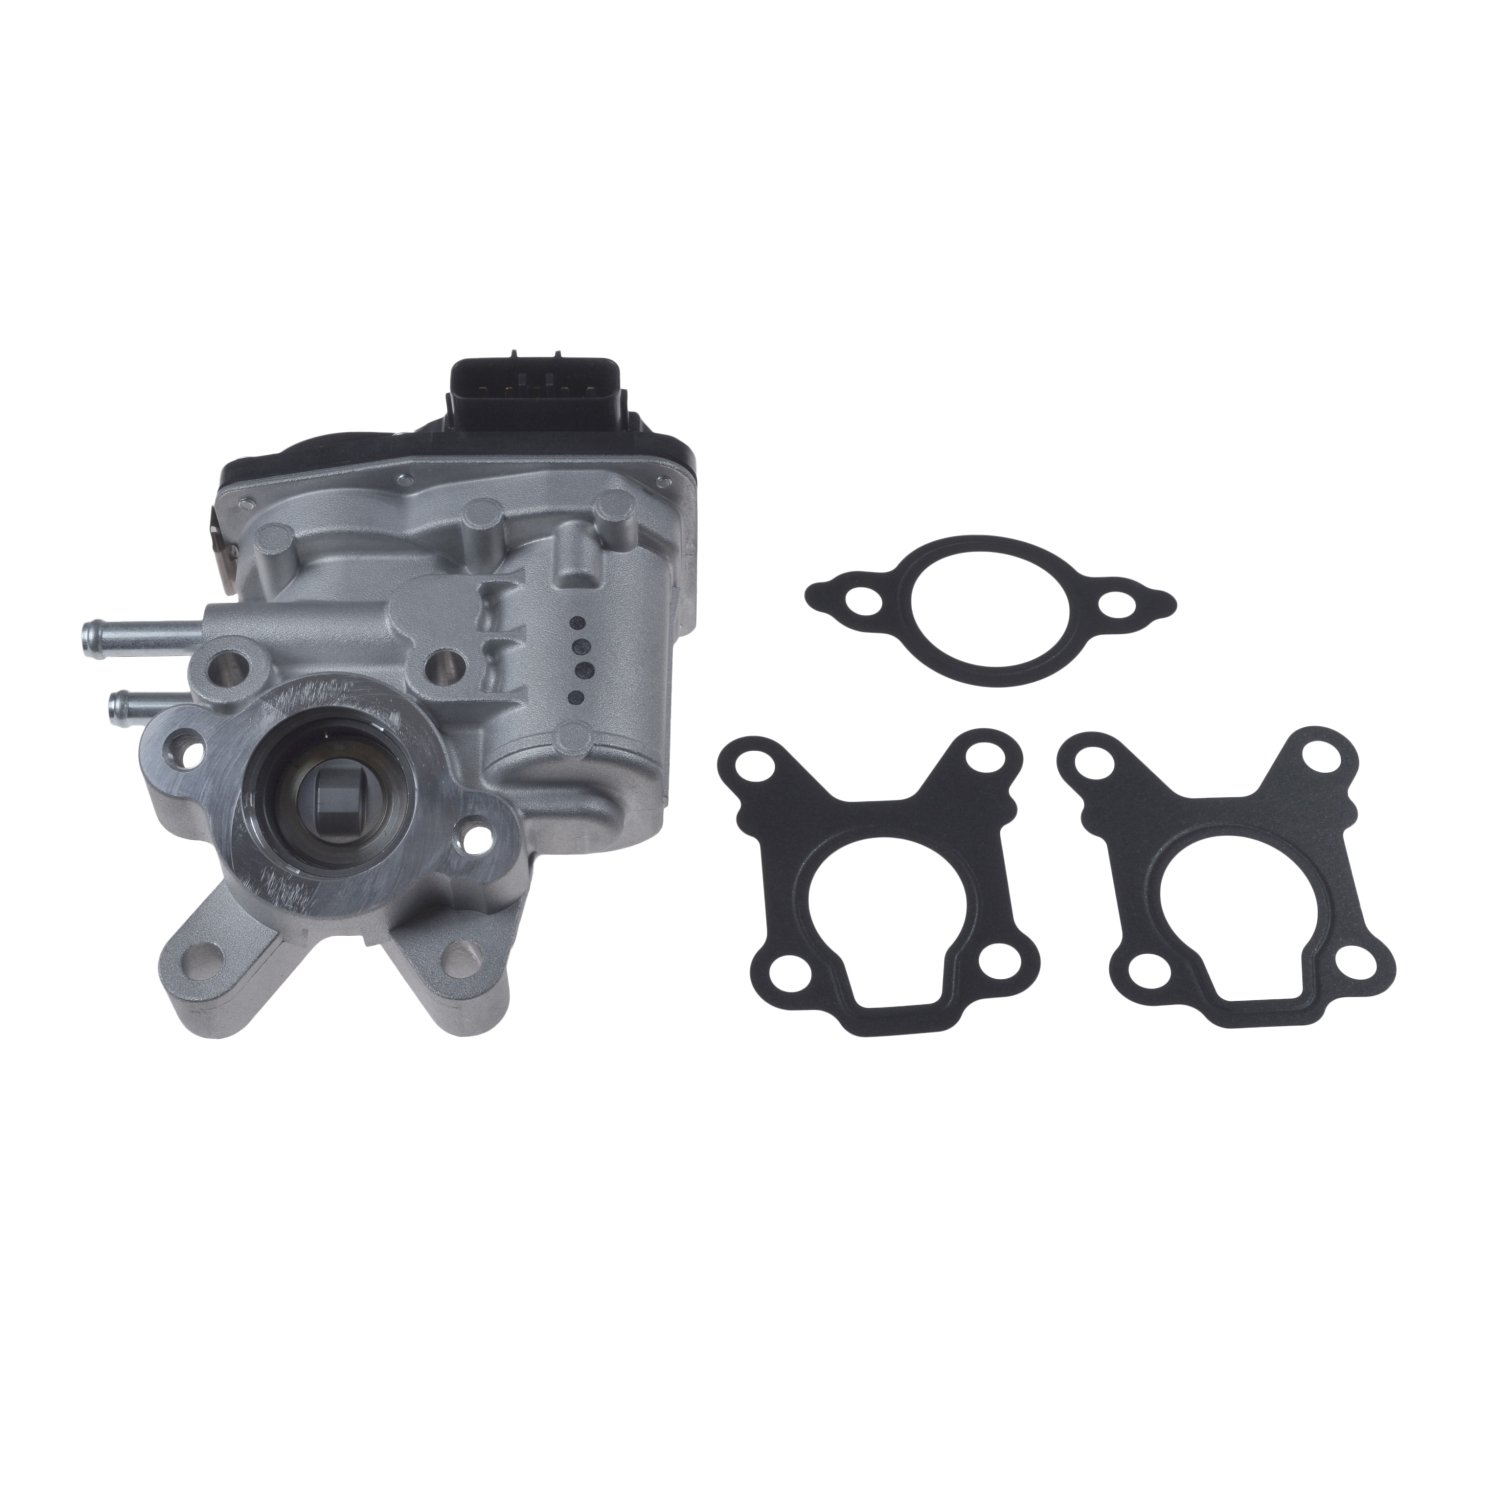 Blue Print ADN17221 EGR Valve with gaskets, pack of one